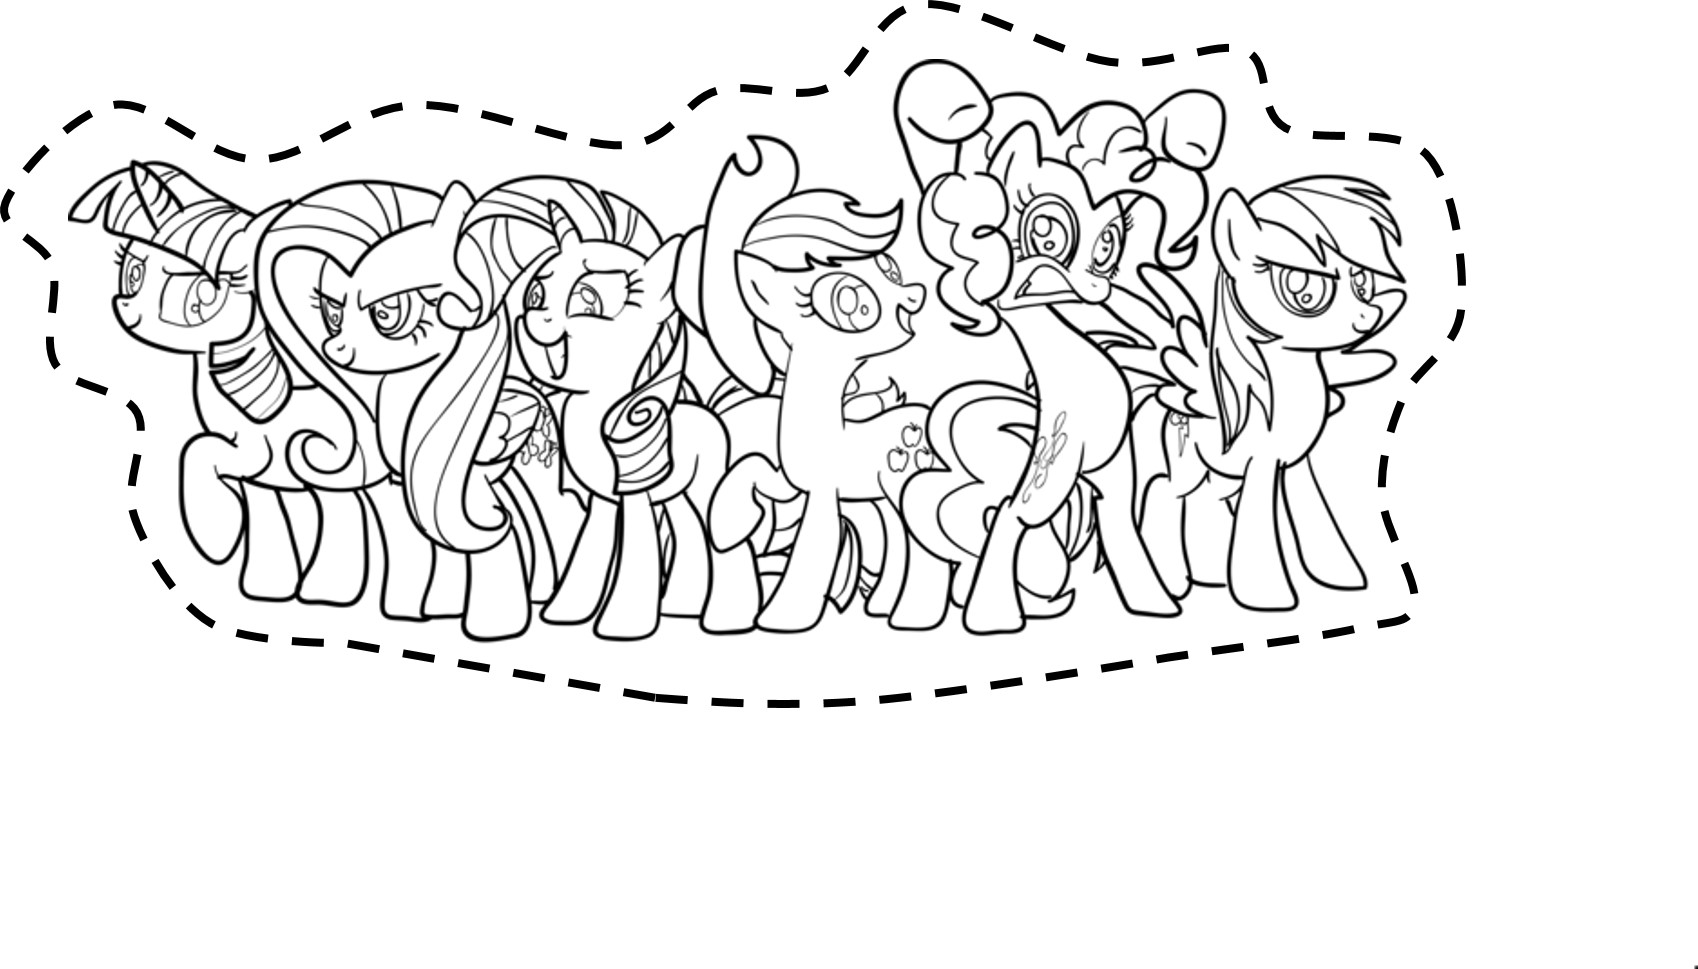 288371182363758234 furthermore My Little Pony Coloring Sheets additionally My Little Pony Coloring Pages furthermore Prince blueblood also I0000dCHe. on princess big mac